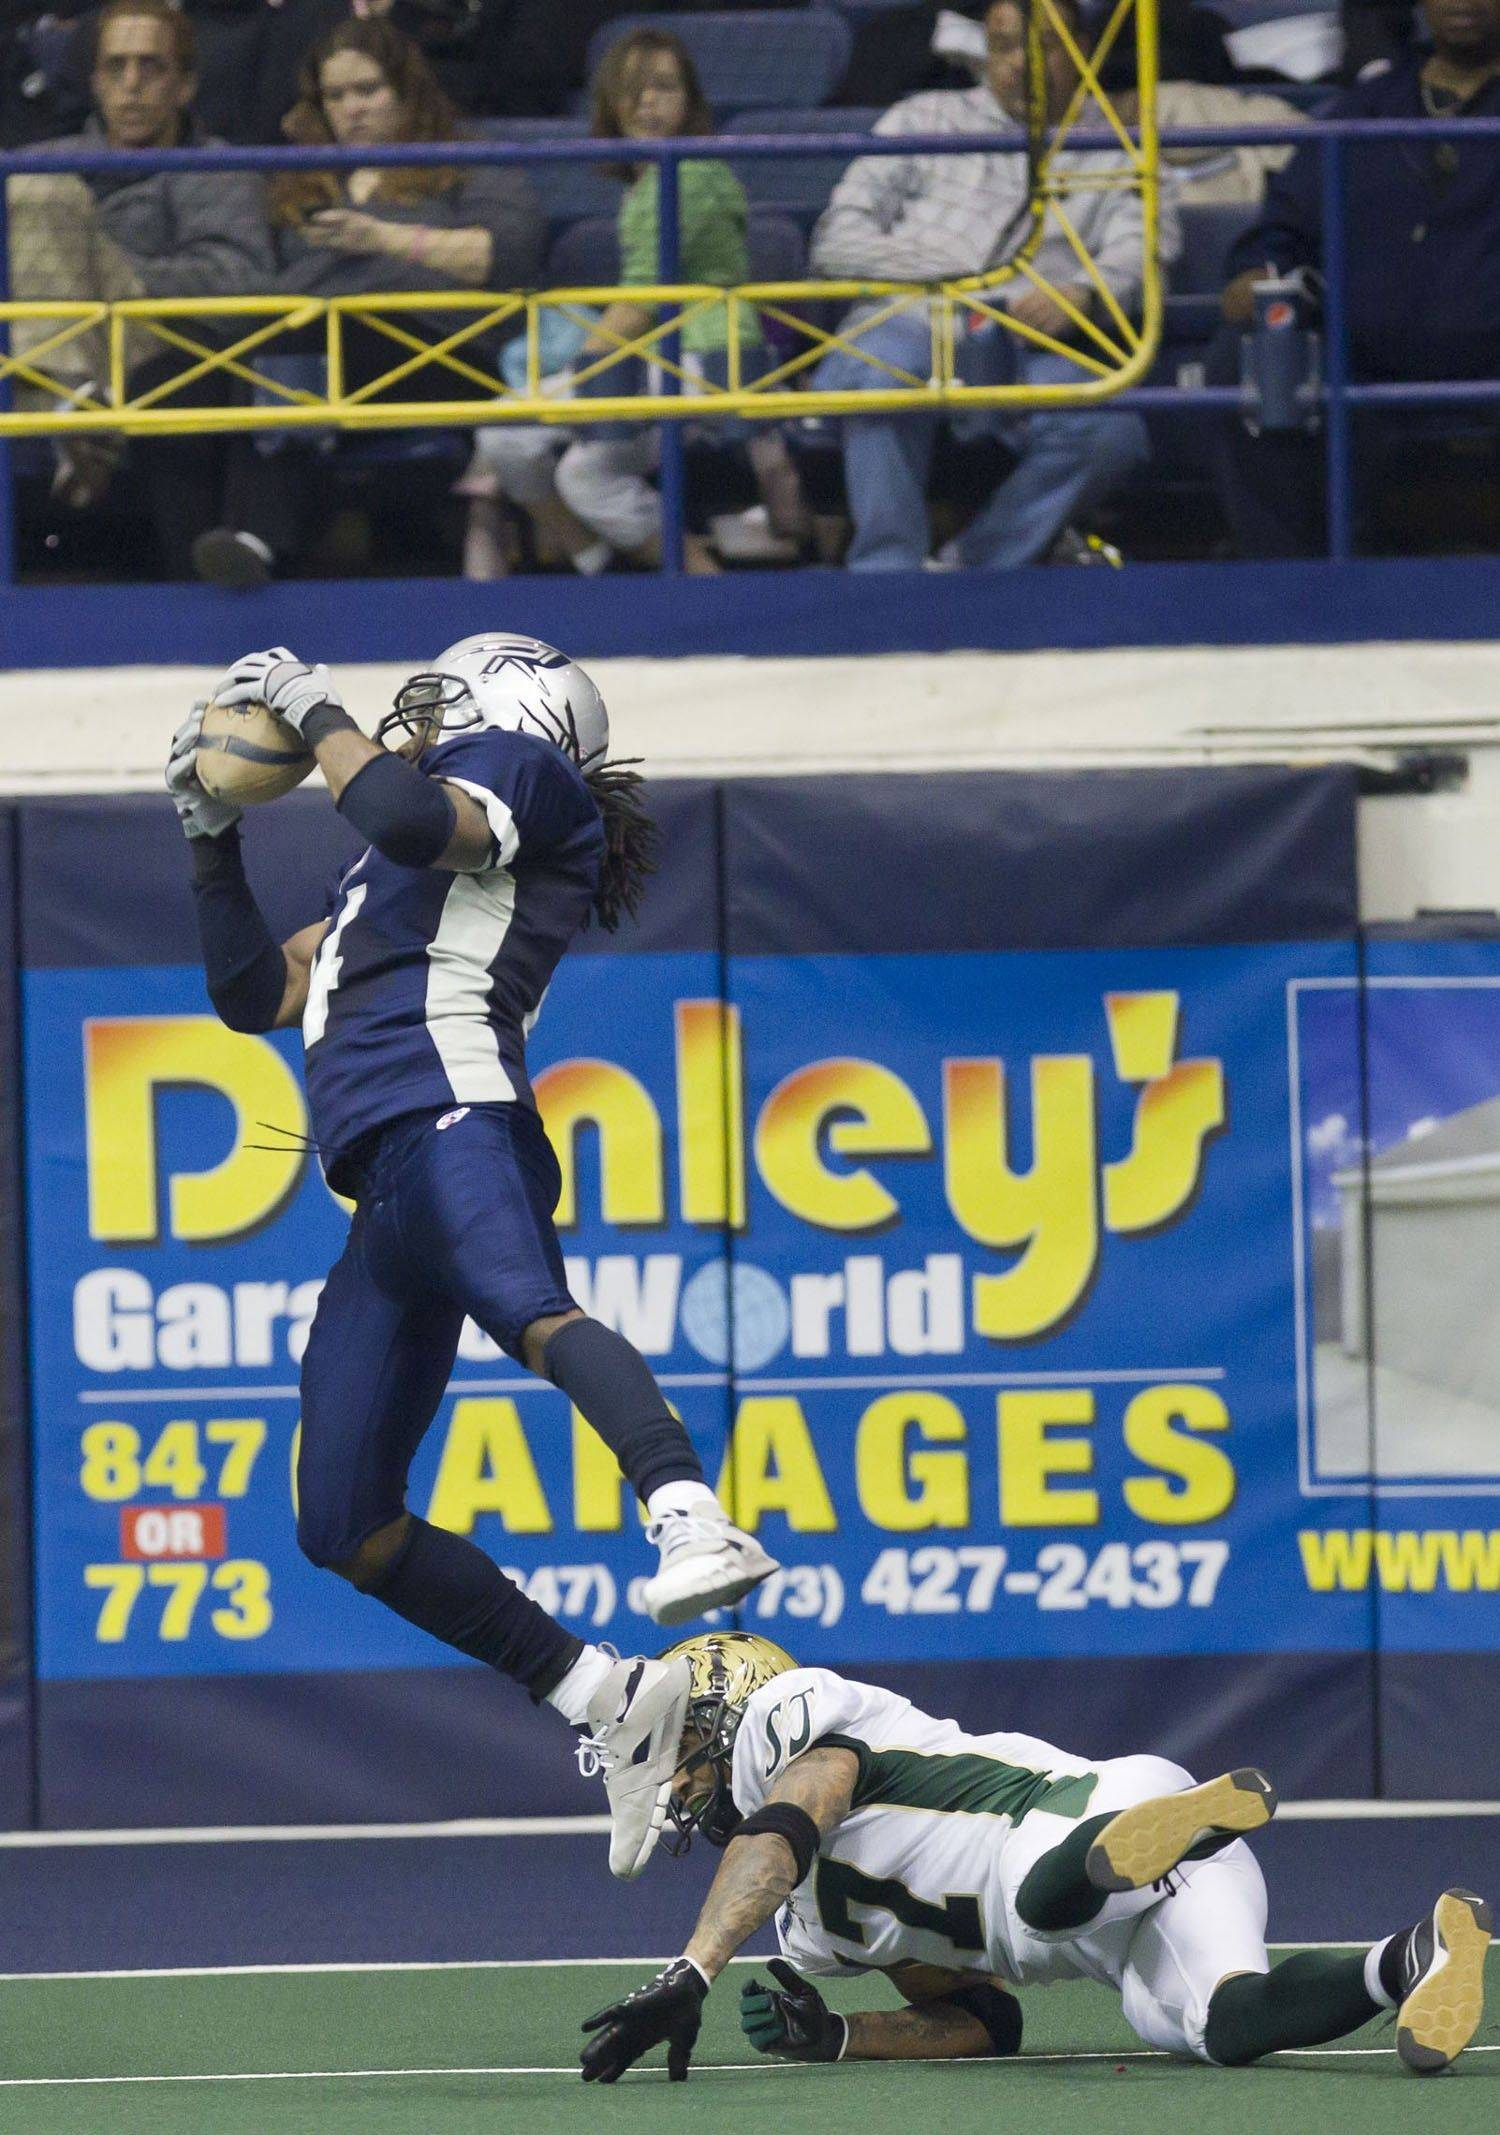 Rush defensive back Vic Hall was named AFL Defensive Player of the Week for his efforts Saturday against the Cleveland Gladiators. Hall had 10.5 tackles including one tackle for loss, and he intercepted Cleveland quarterback Kurt Rocco and returned the pick for 30 yards.